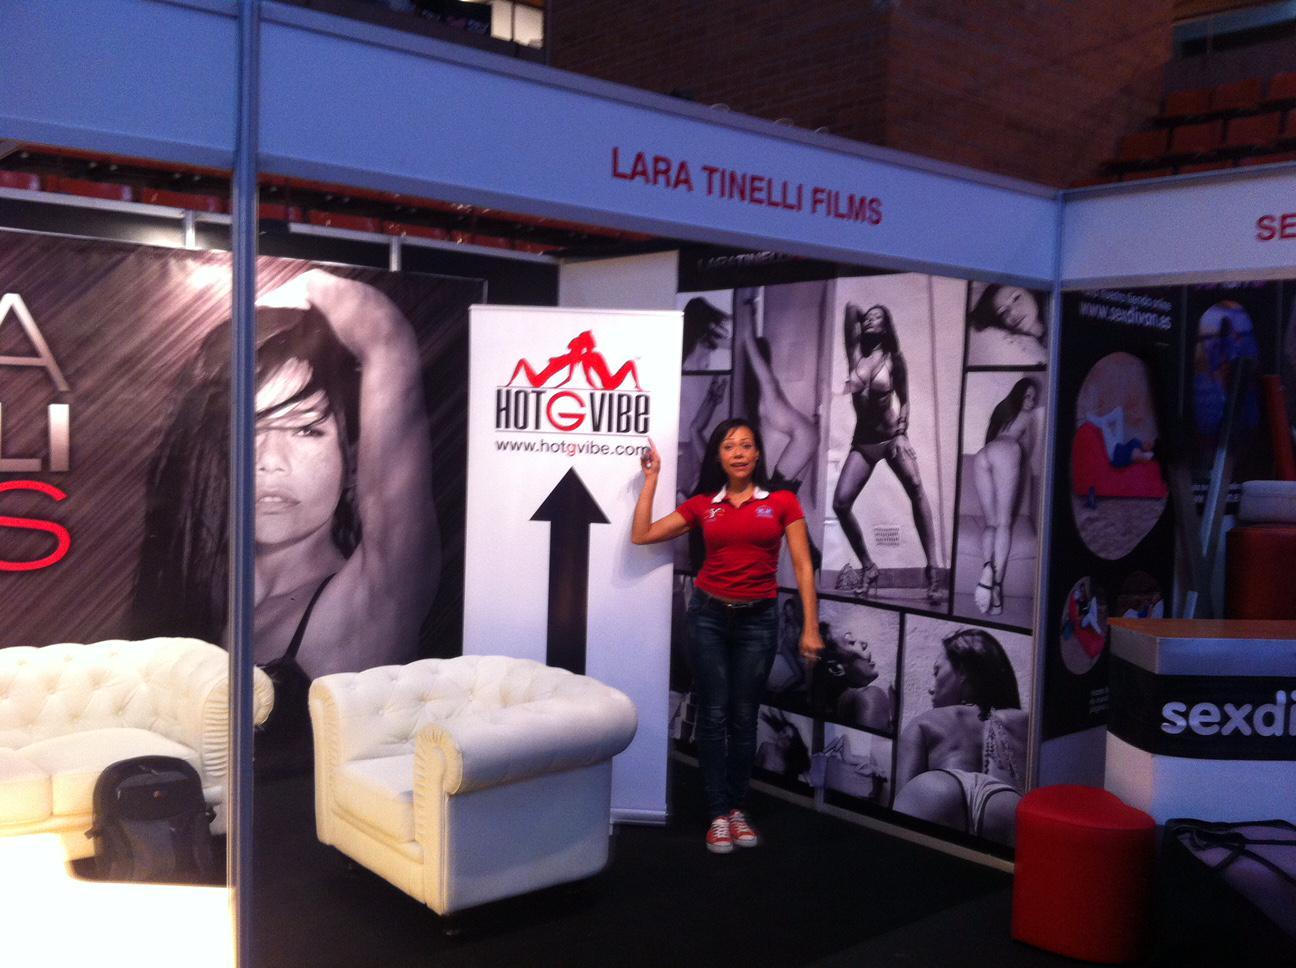 Pre-Show Earlier today at @SALONEROTICOBCN booth with the Beautiful @laratinelli http://t.co/n3cf4hDrtw